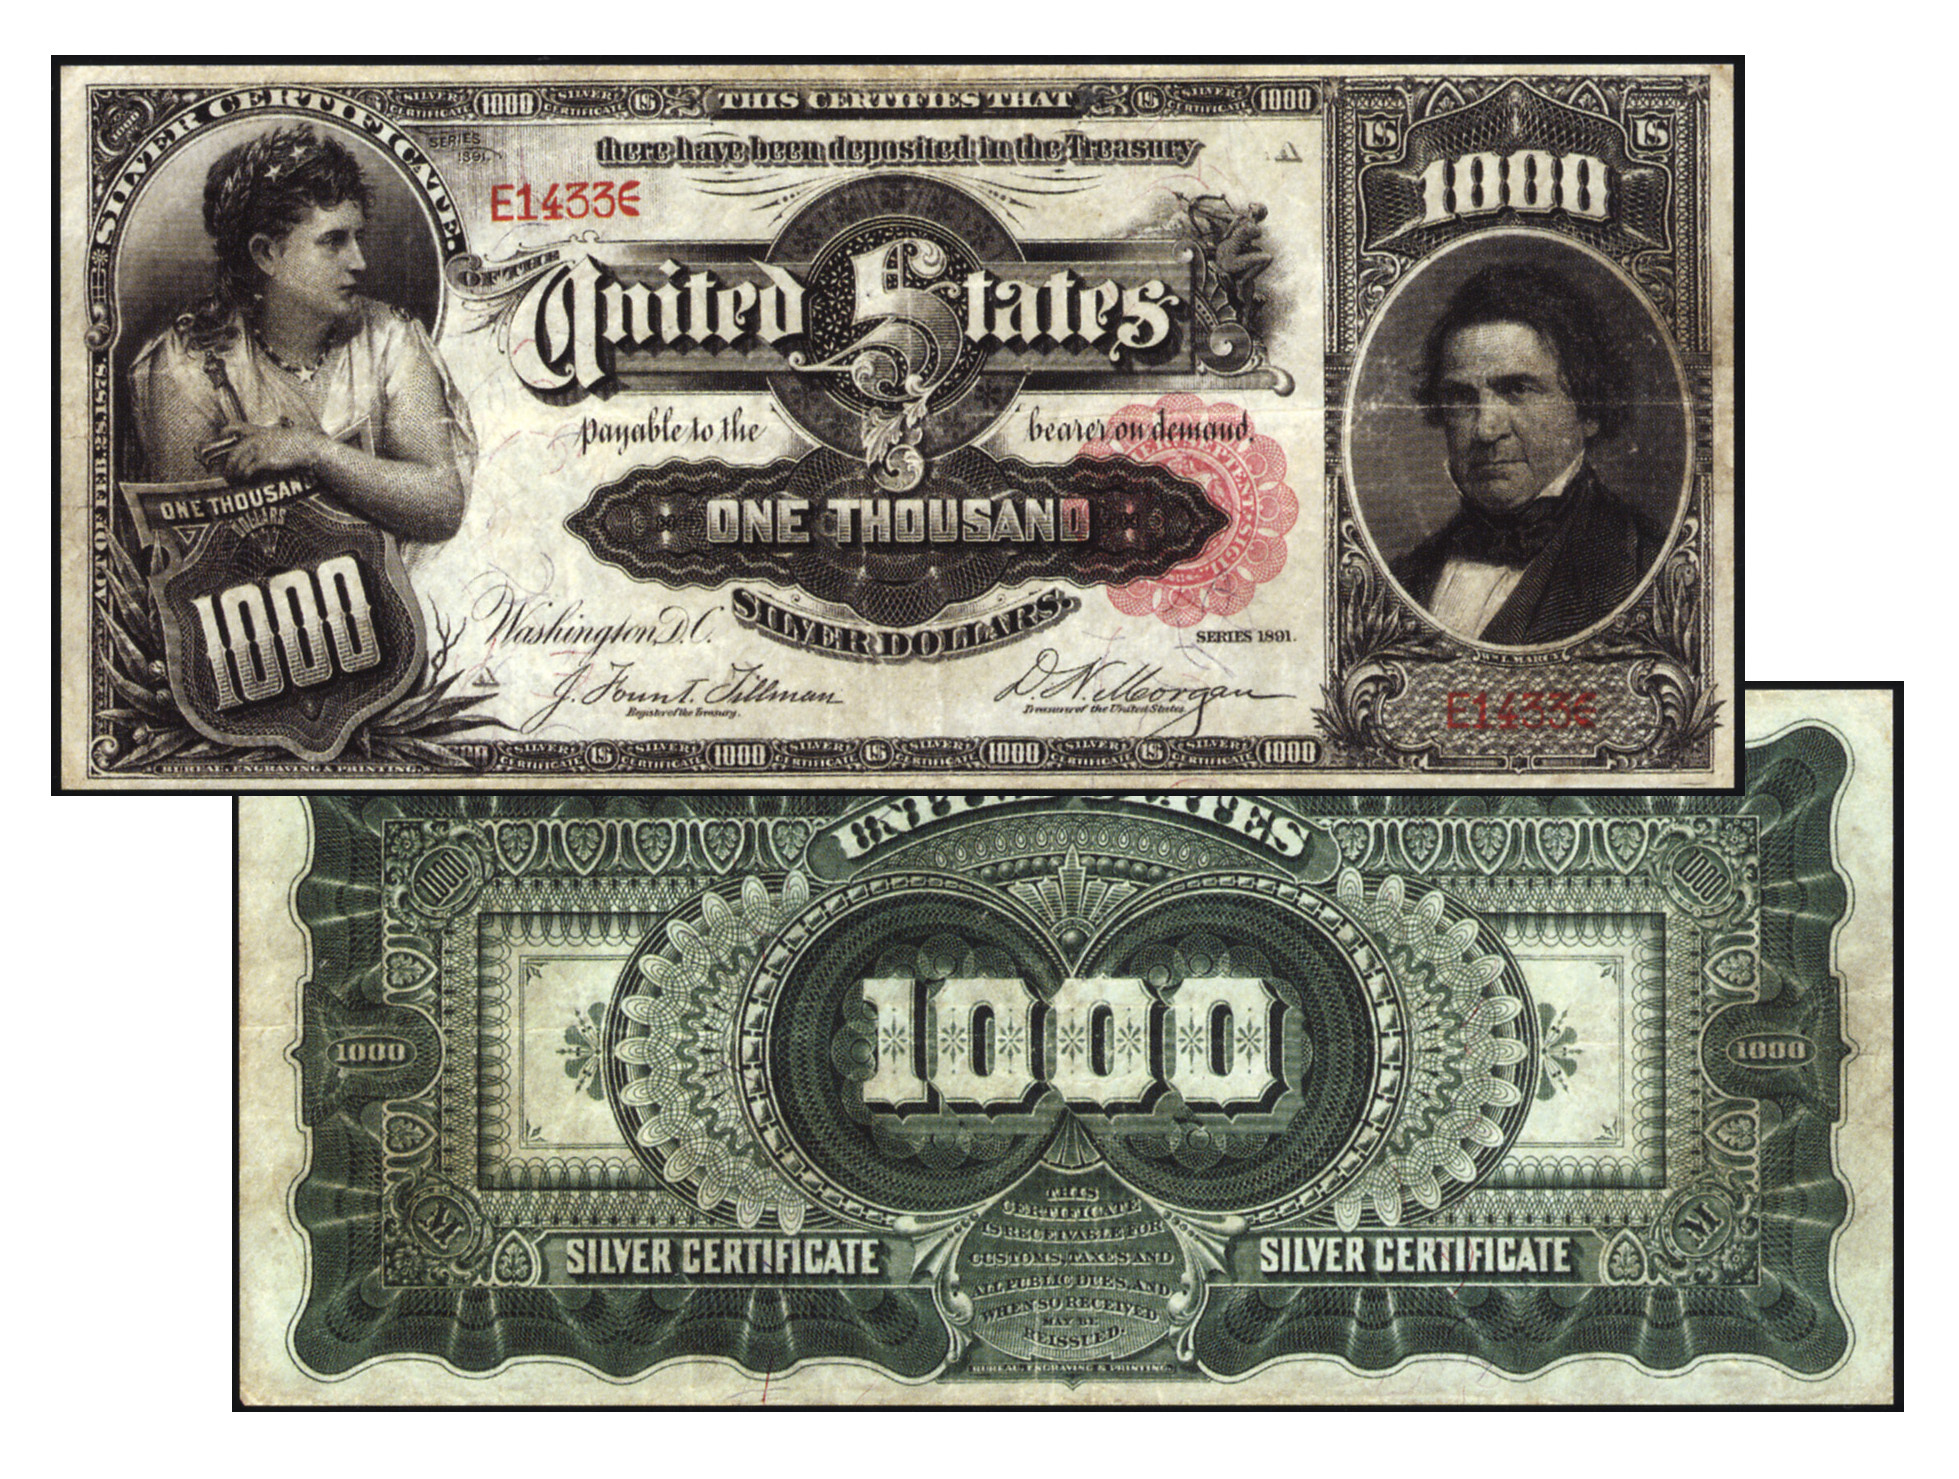 Stacks bowers galleries sells 1891 1000 marcy silver stacks bowers galleries sells 1891 1000 marcy silver certificate for 26 million business wire xflitez Images